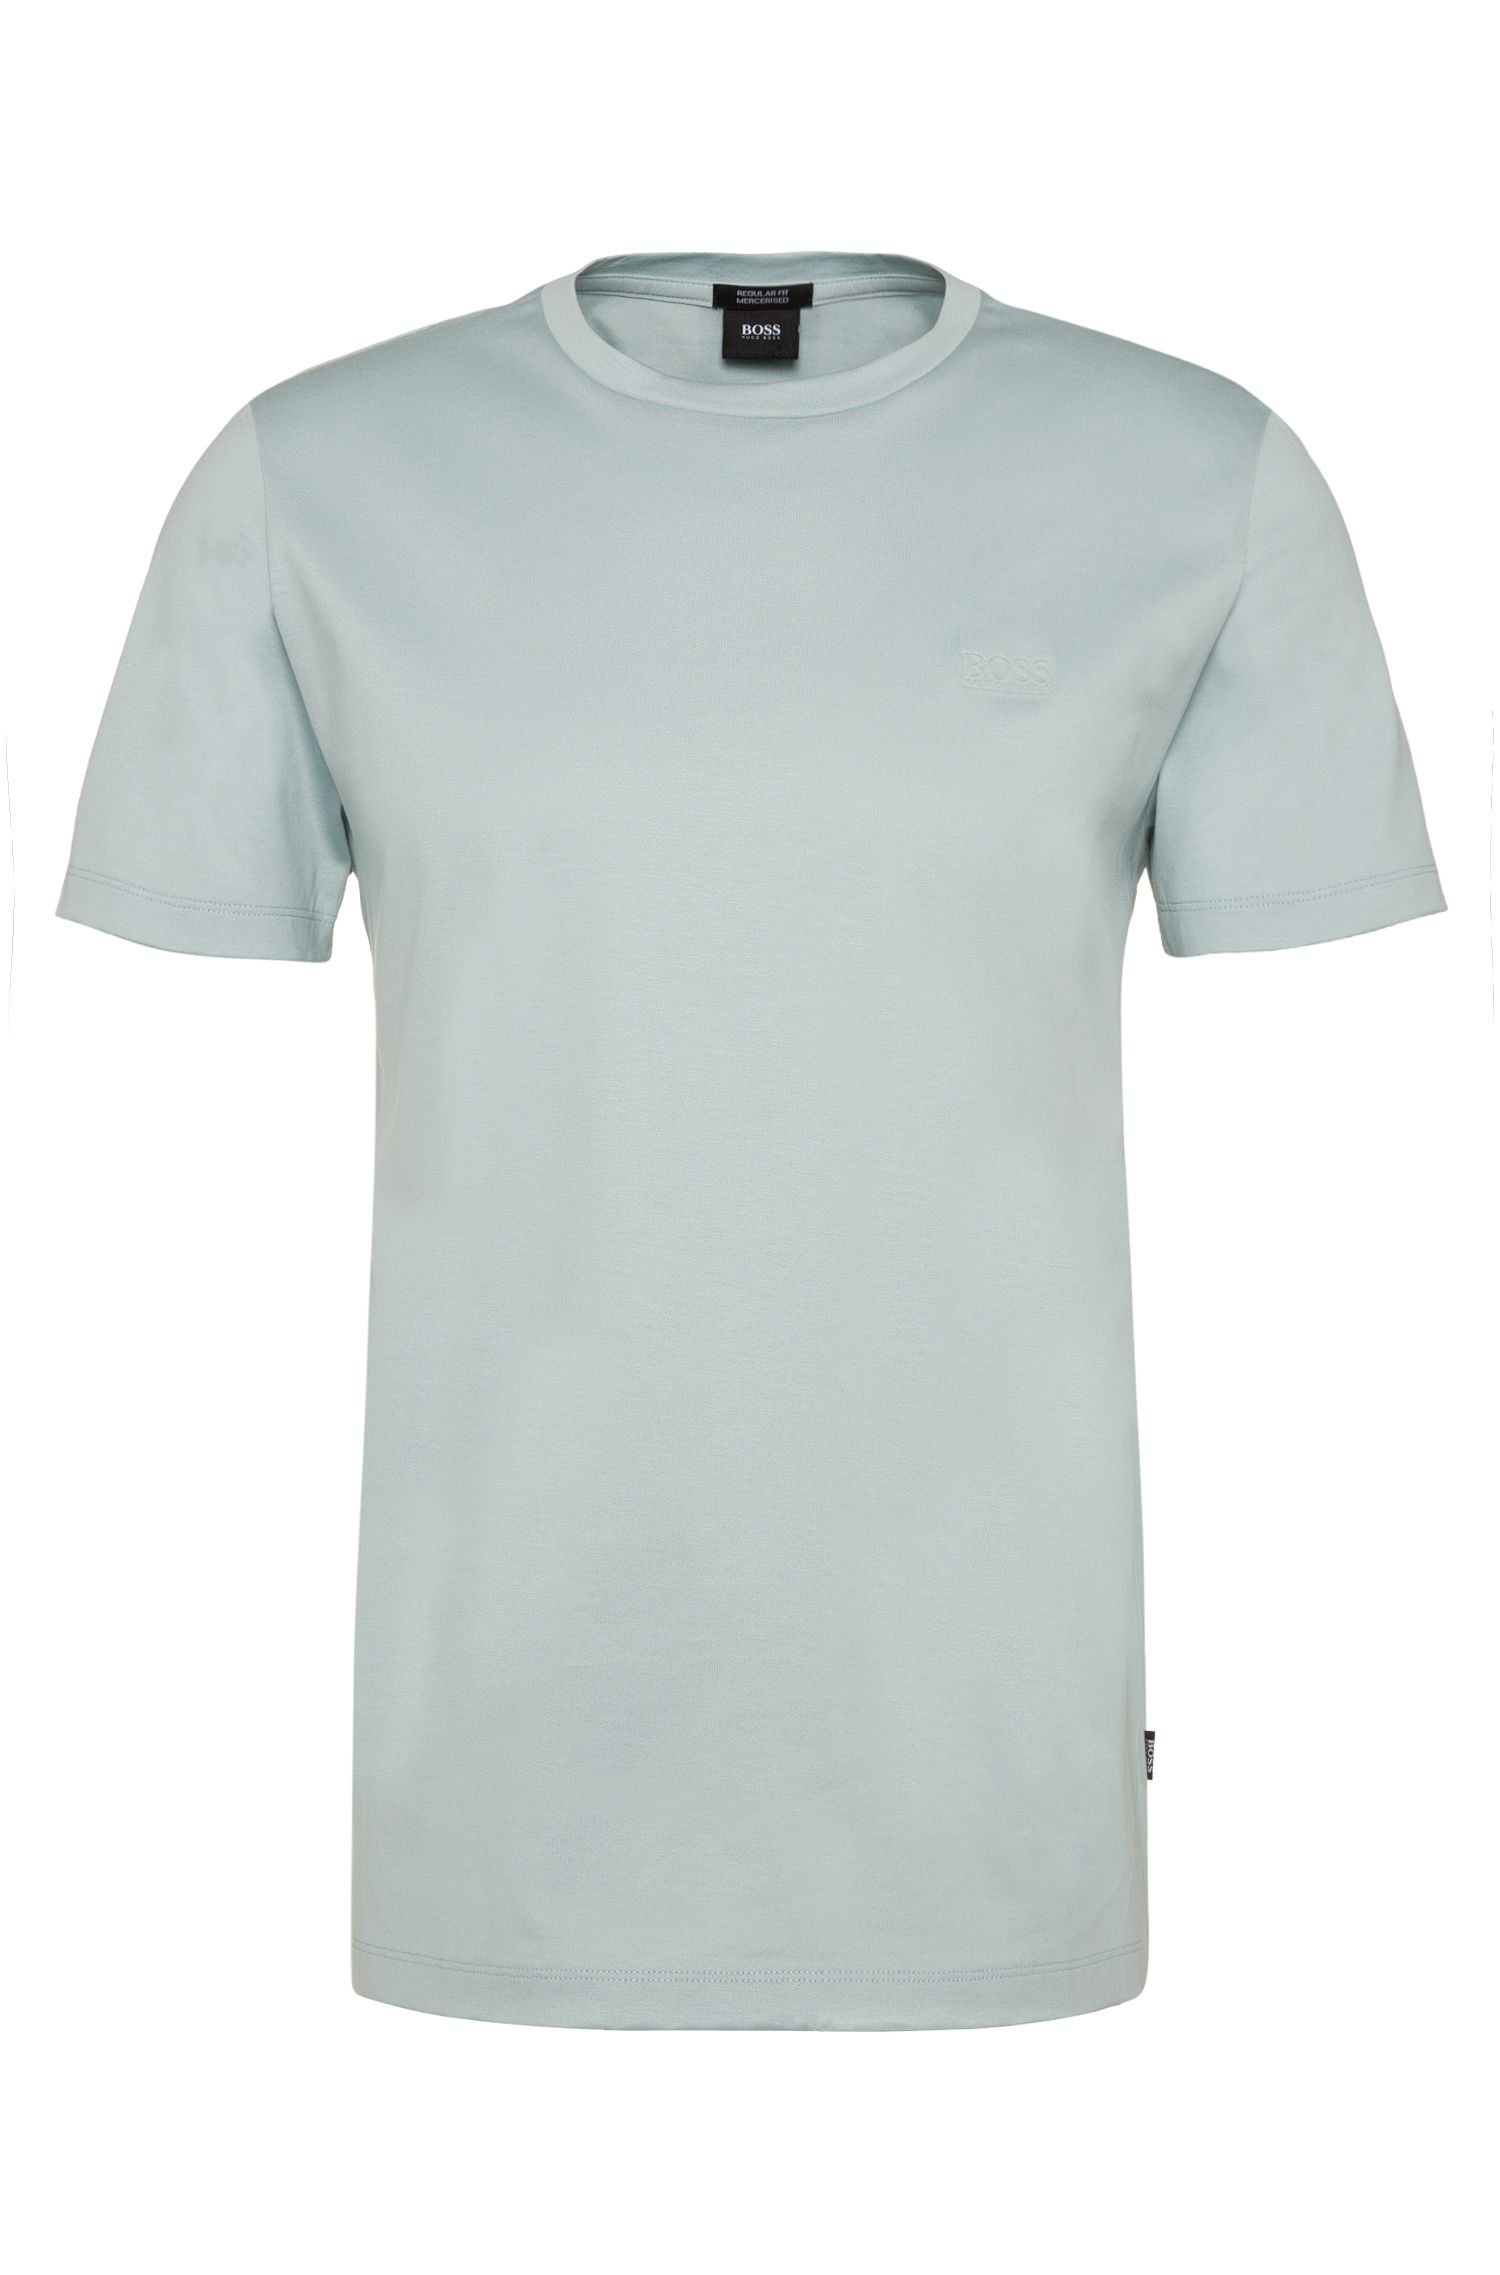 T-shirt Regular Fit en coton mercerisé : « Tiburt 01 »